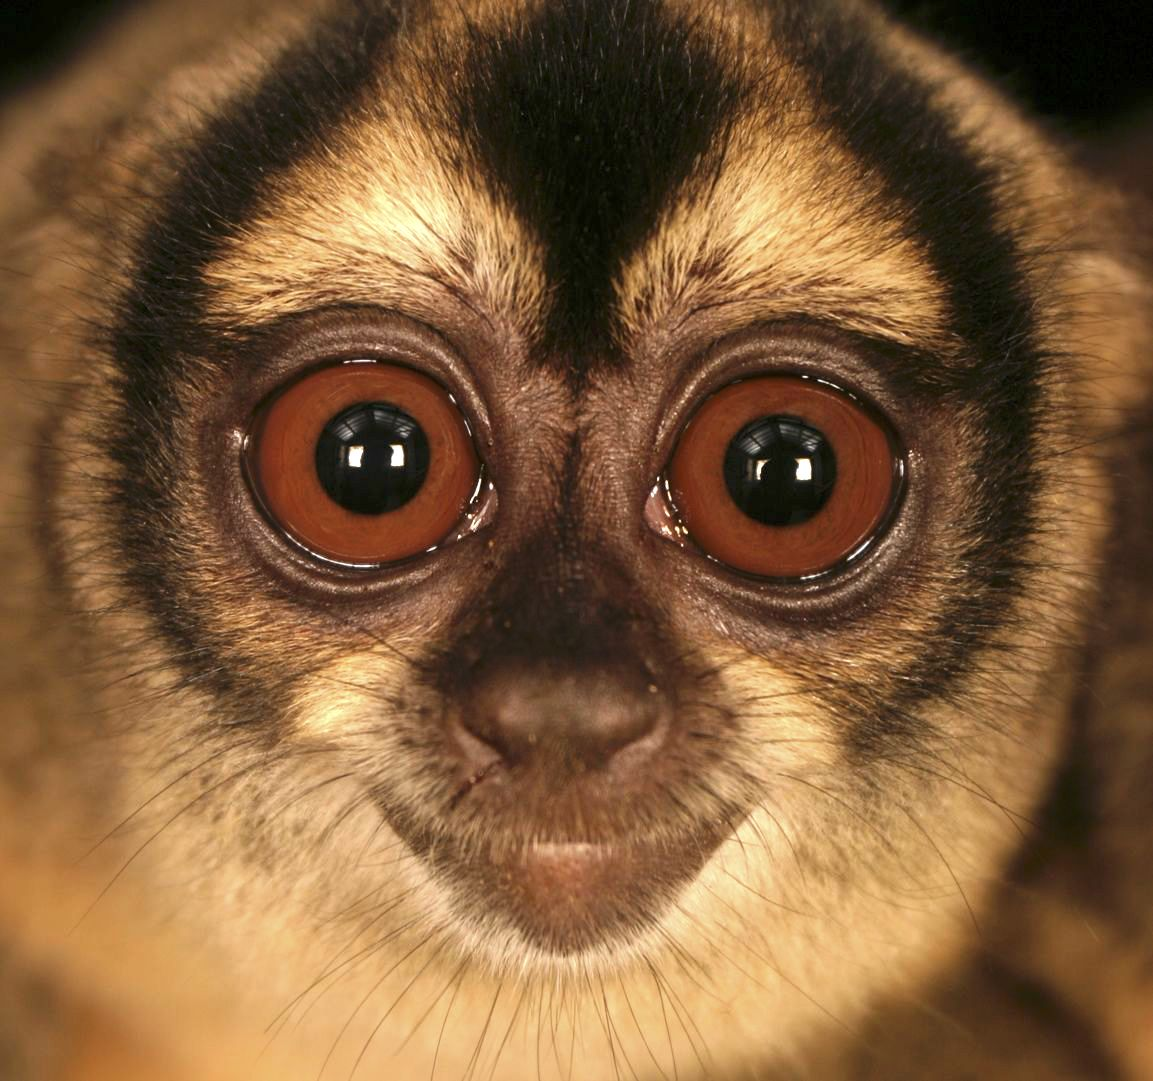 Night-monkey-cropped.jpg